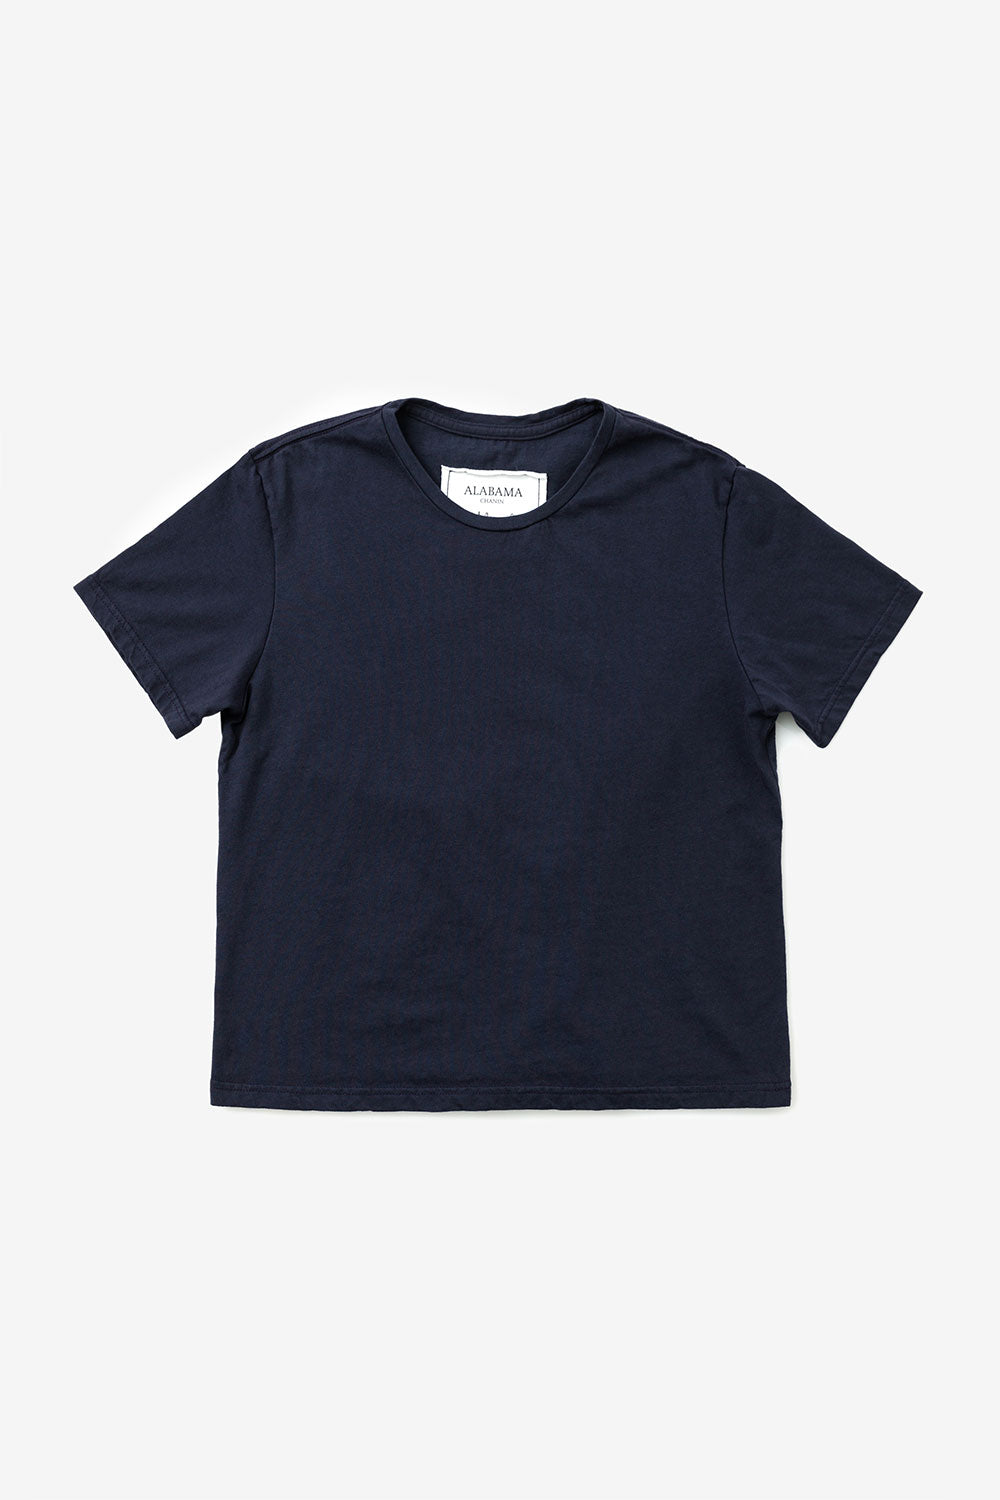 image of The Boxy Tee